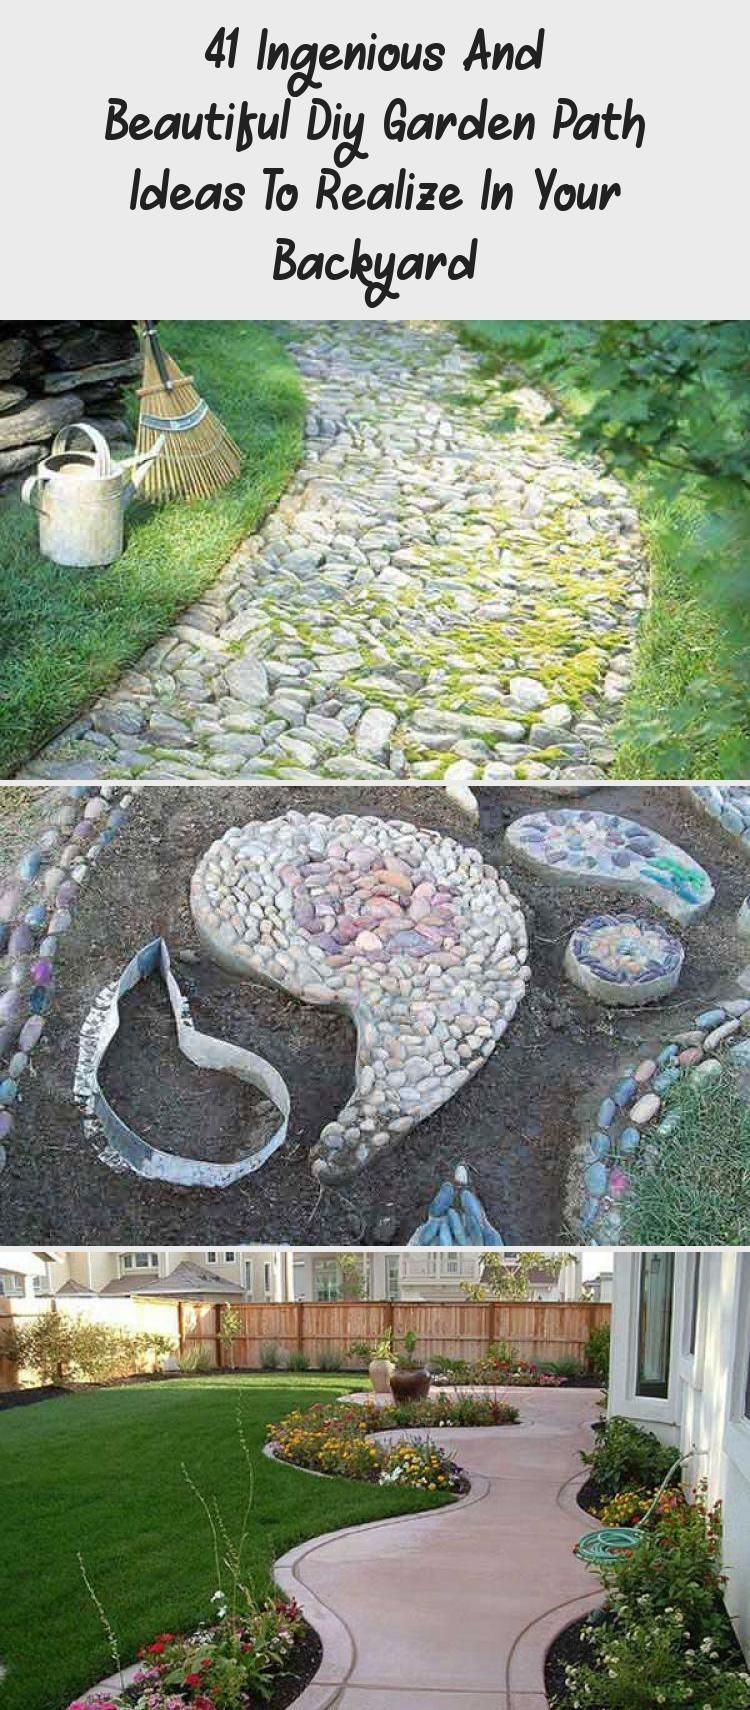 Photo of 41 Ingenious And Beautiful Diy Garden Path Ideas To Realize In Your Backyard – GARDEN